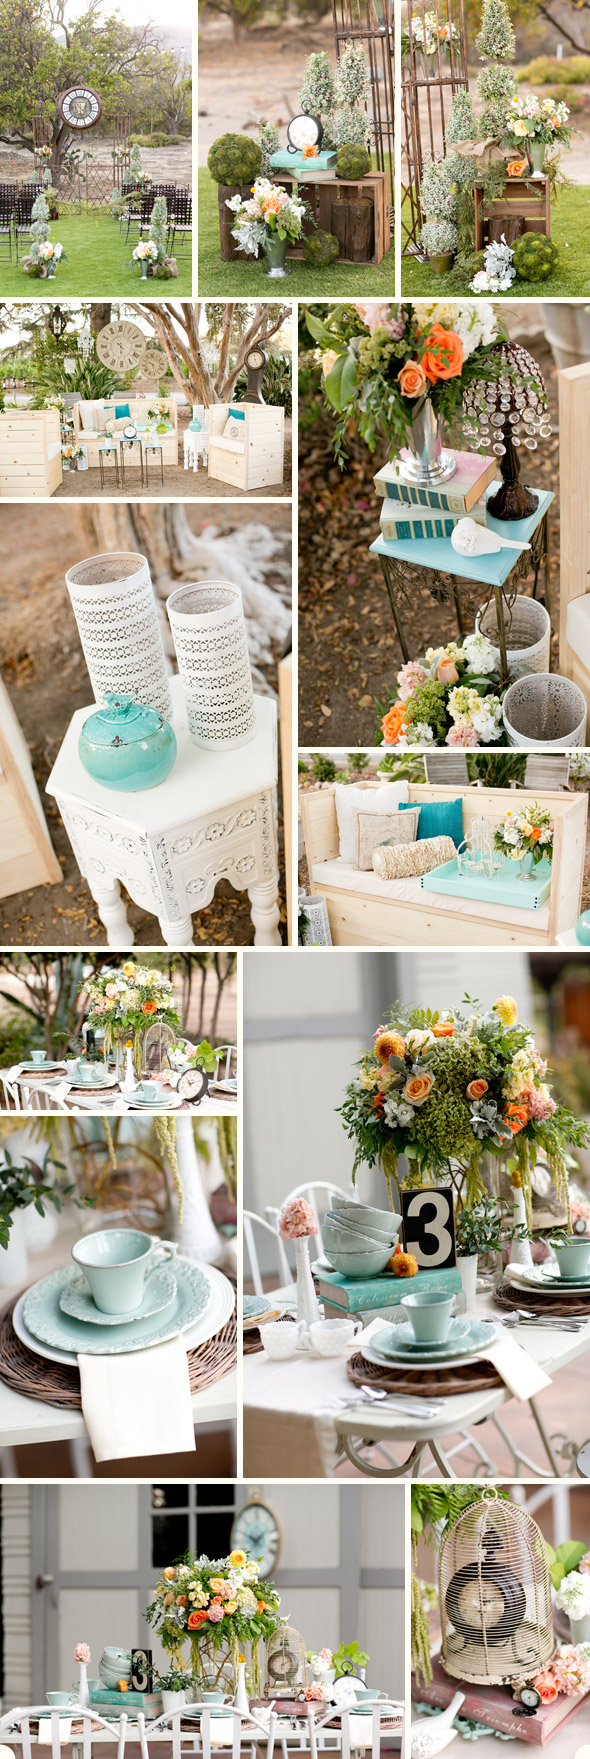 From vintage clocks to magnificent chandeliers, giant oak trees and tasty sweets, this romantic summer wedding day combines luxury with ease.